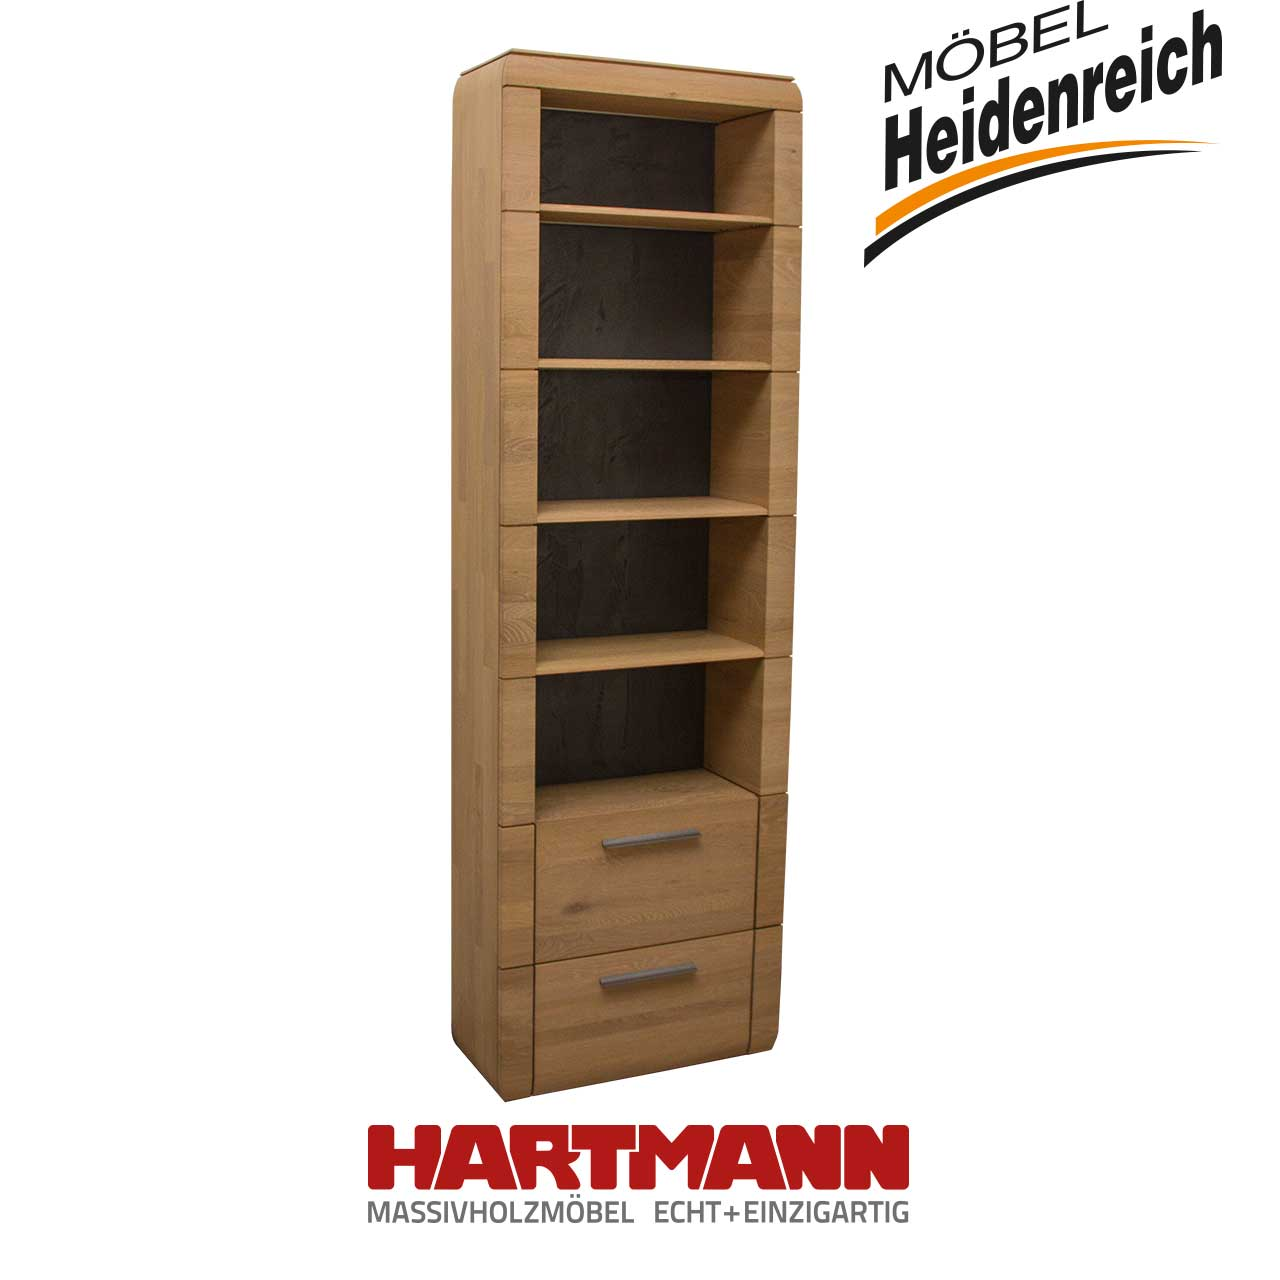 hartmann regal trento hartmann marken m bel heidenreich. Black Bedroom Furniture Sets. Home Design Ideas